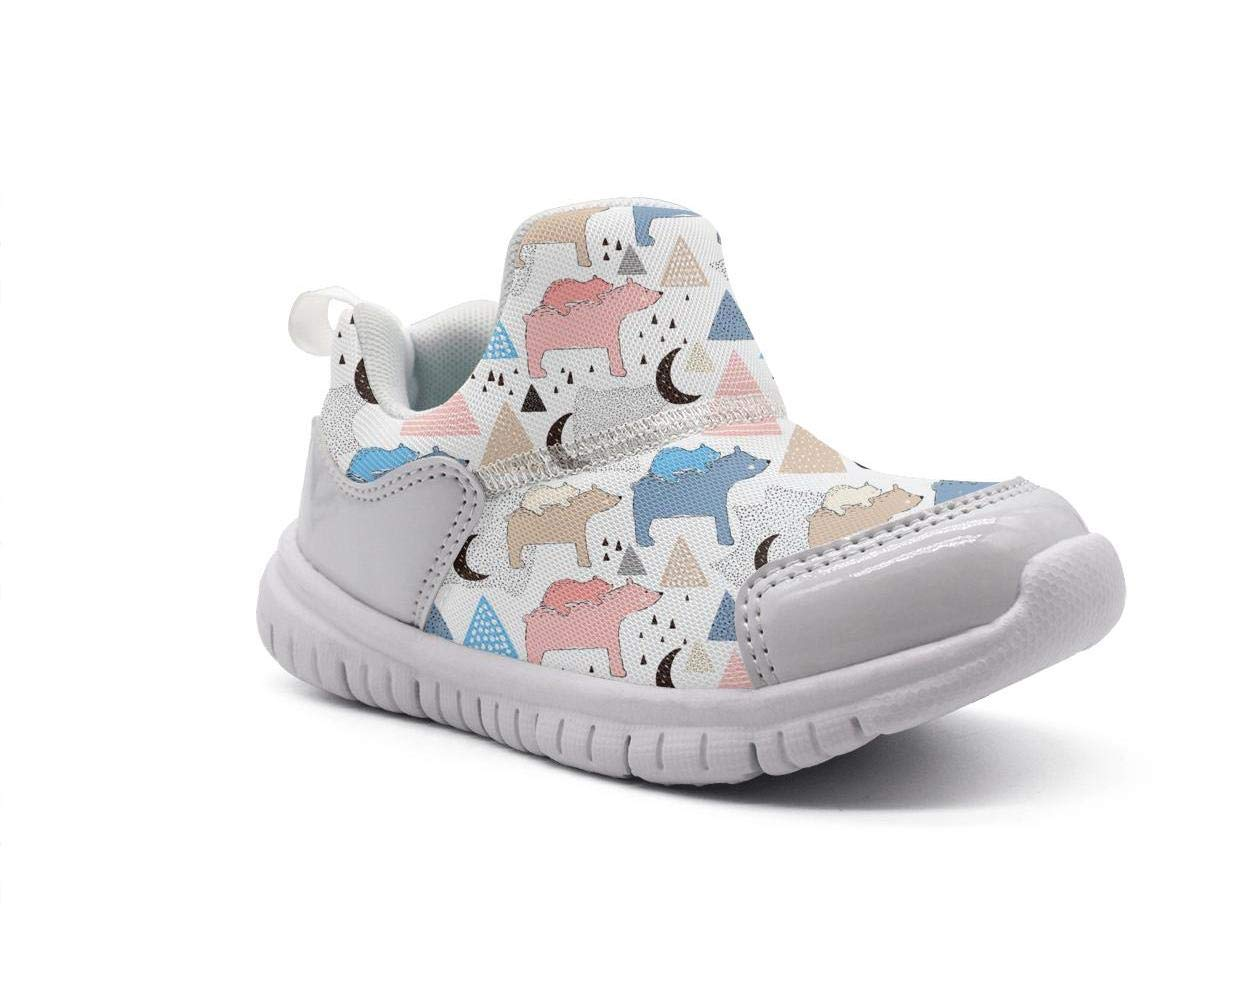 ONEYUAN Children Colorful Polar Bear Habitat Kid Casual Lightweight Sport Shoes Sneakers Running Shoes